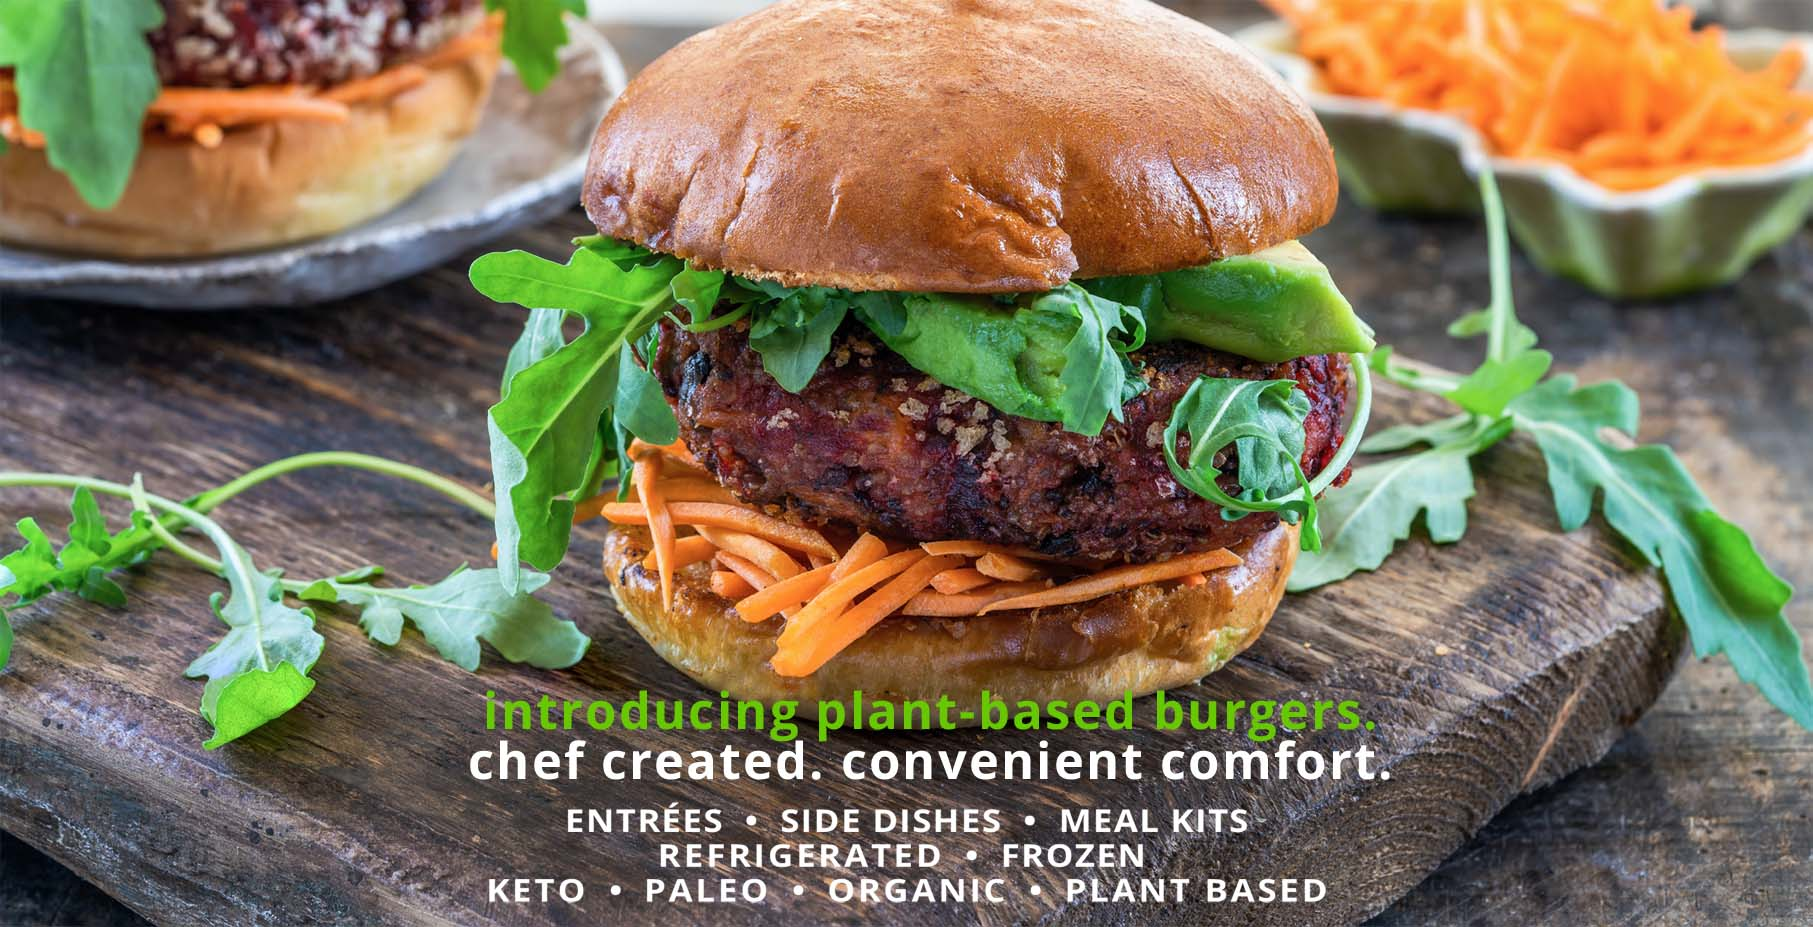 Culinevo premade entrees side dishes and meal kits including food for Paleo, Keto, Organic, Natural, Plant-Based, Vegetarian, and Vegan.  Chef created convenient meal kits, entrees, side dishes and desserts.